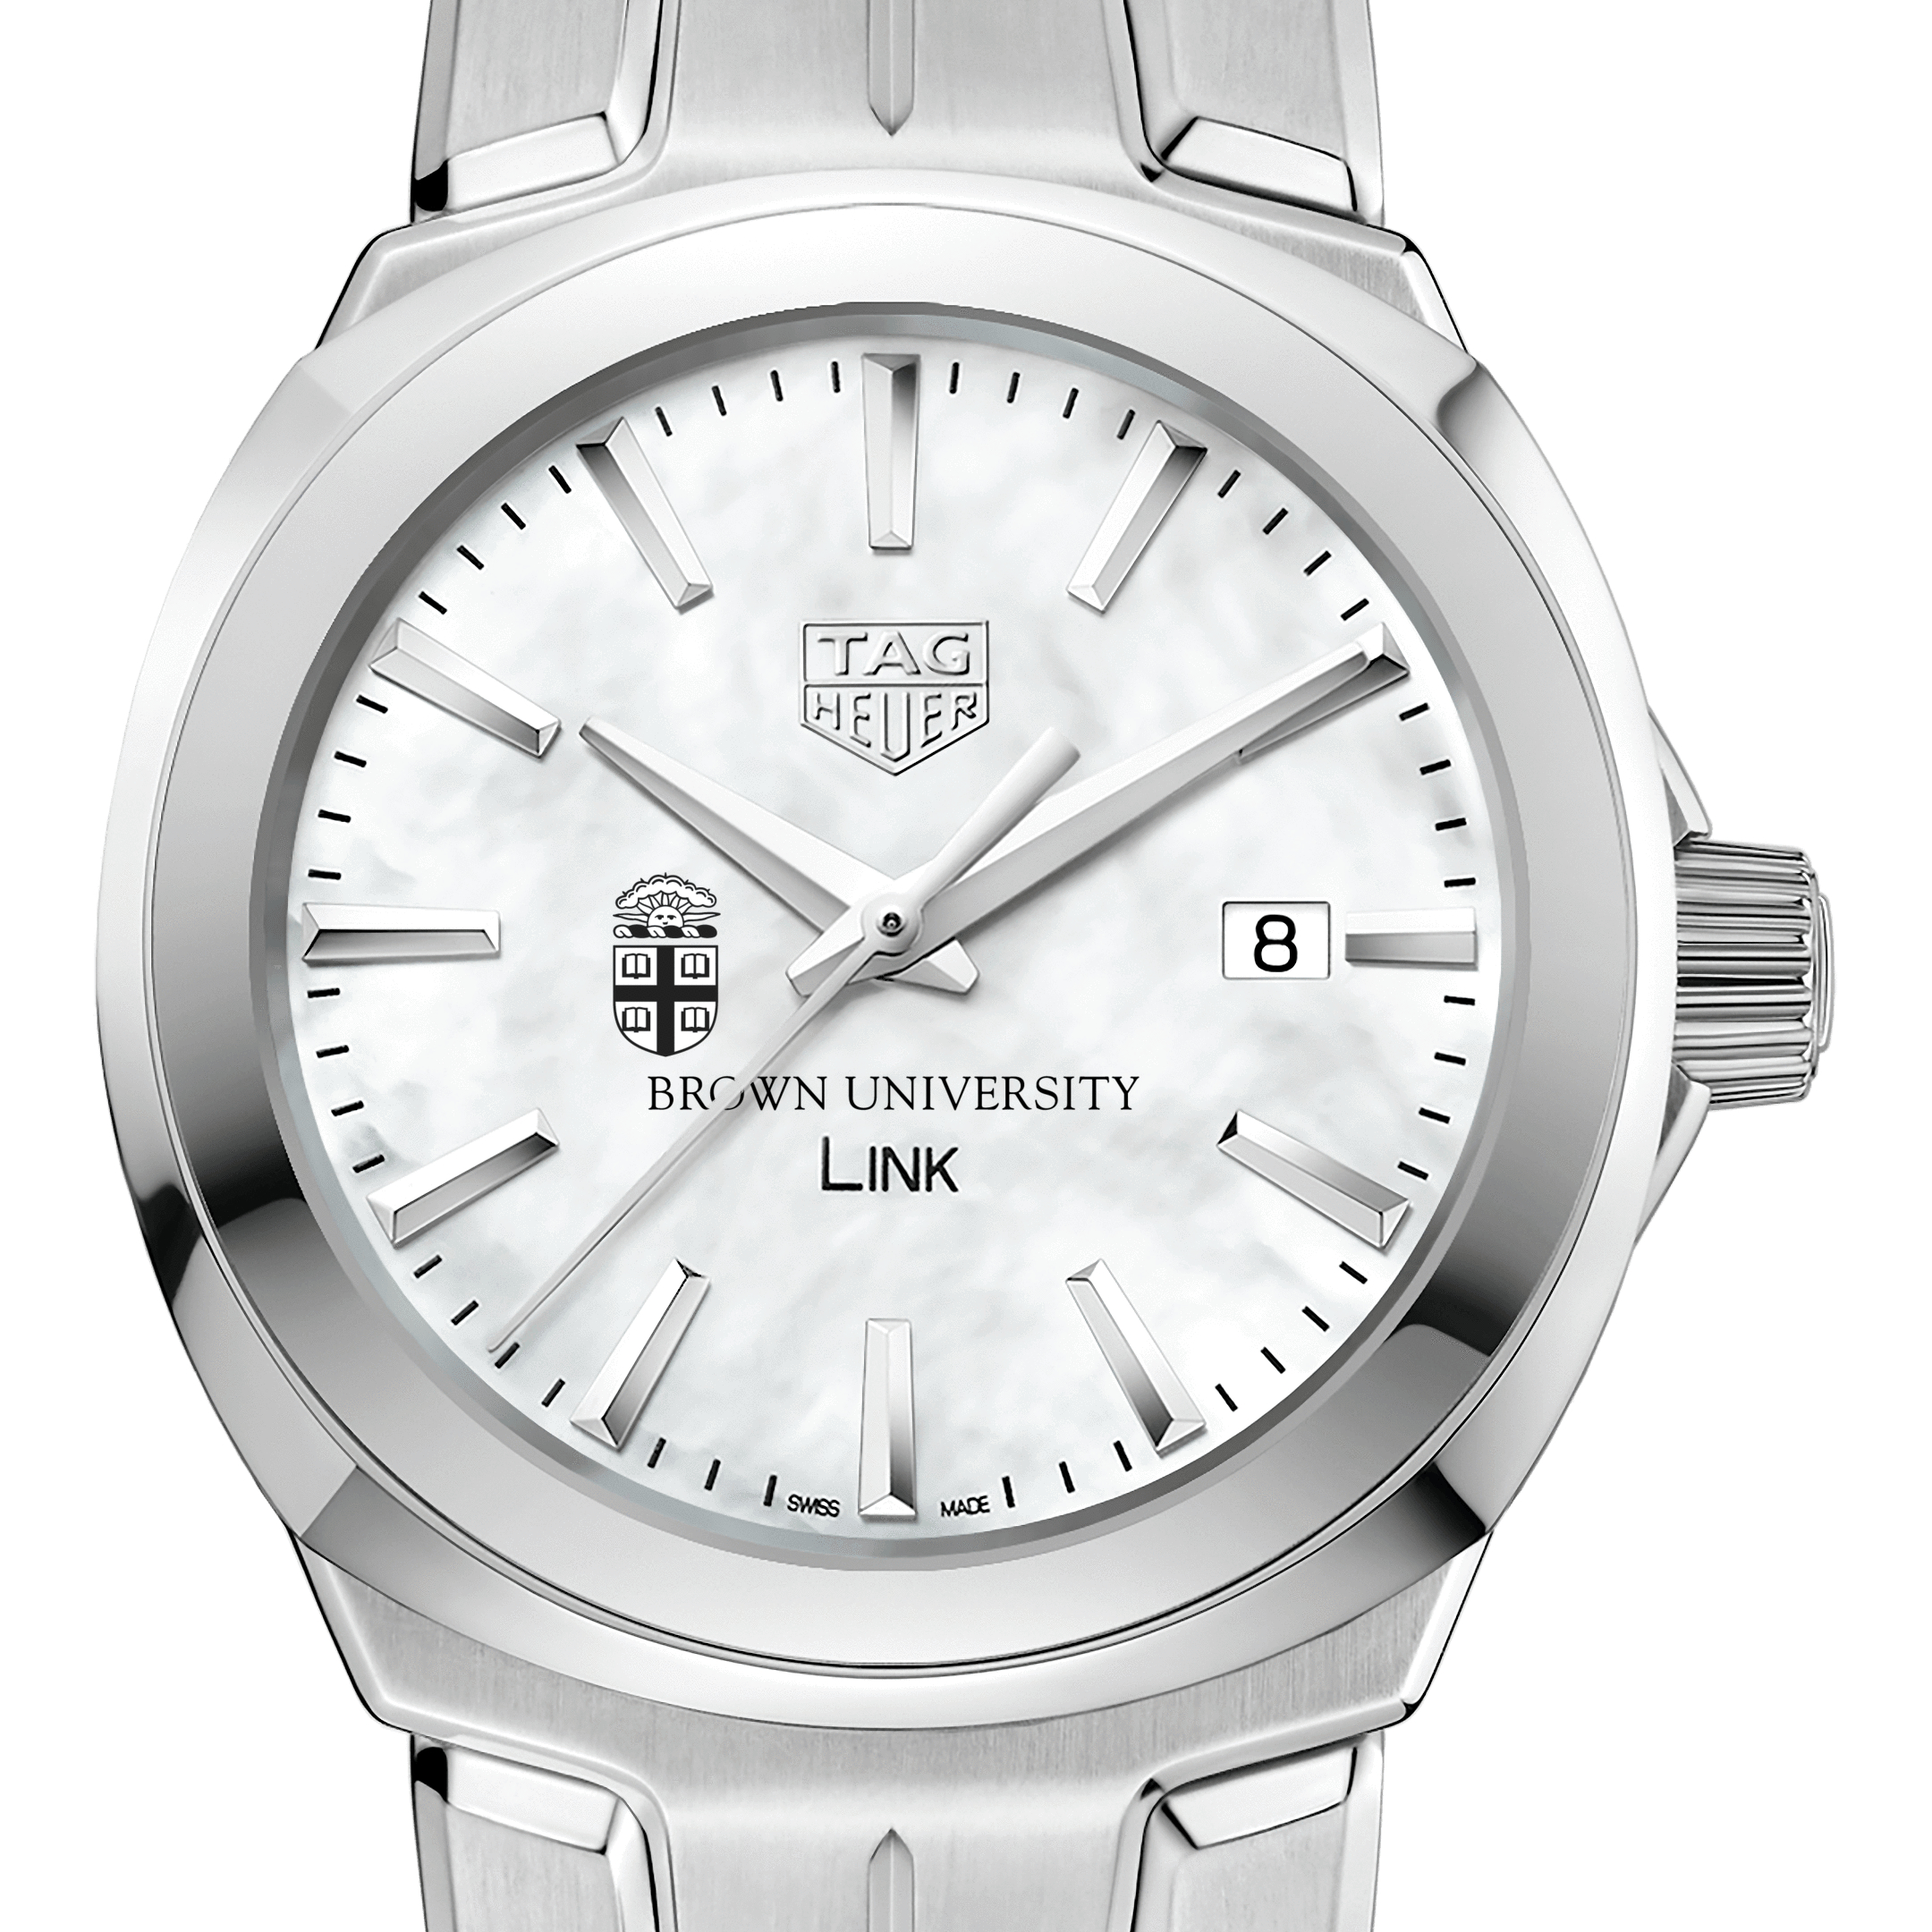 Brown University TAG Heuer LINK for Women